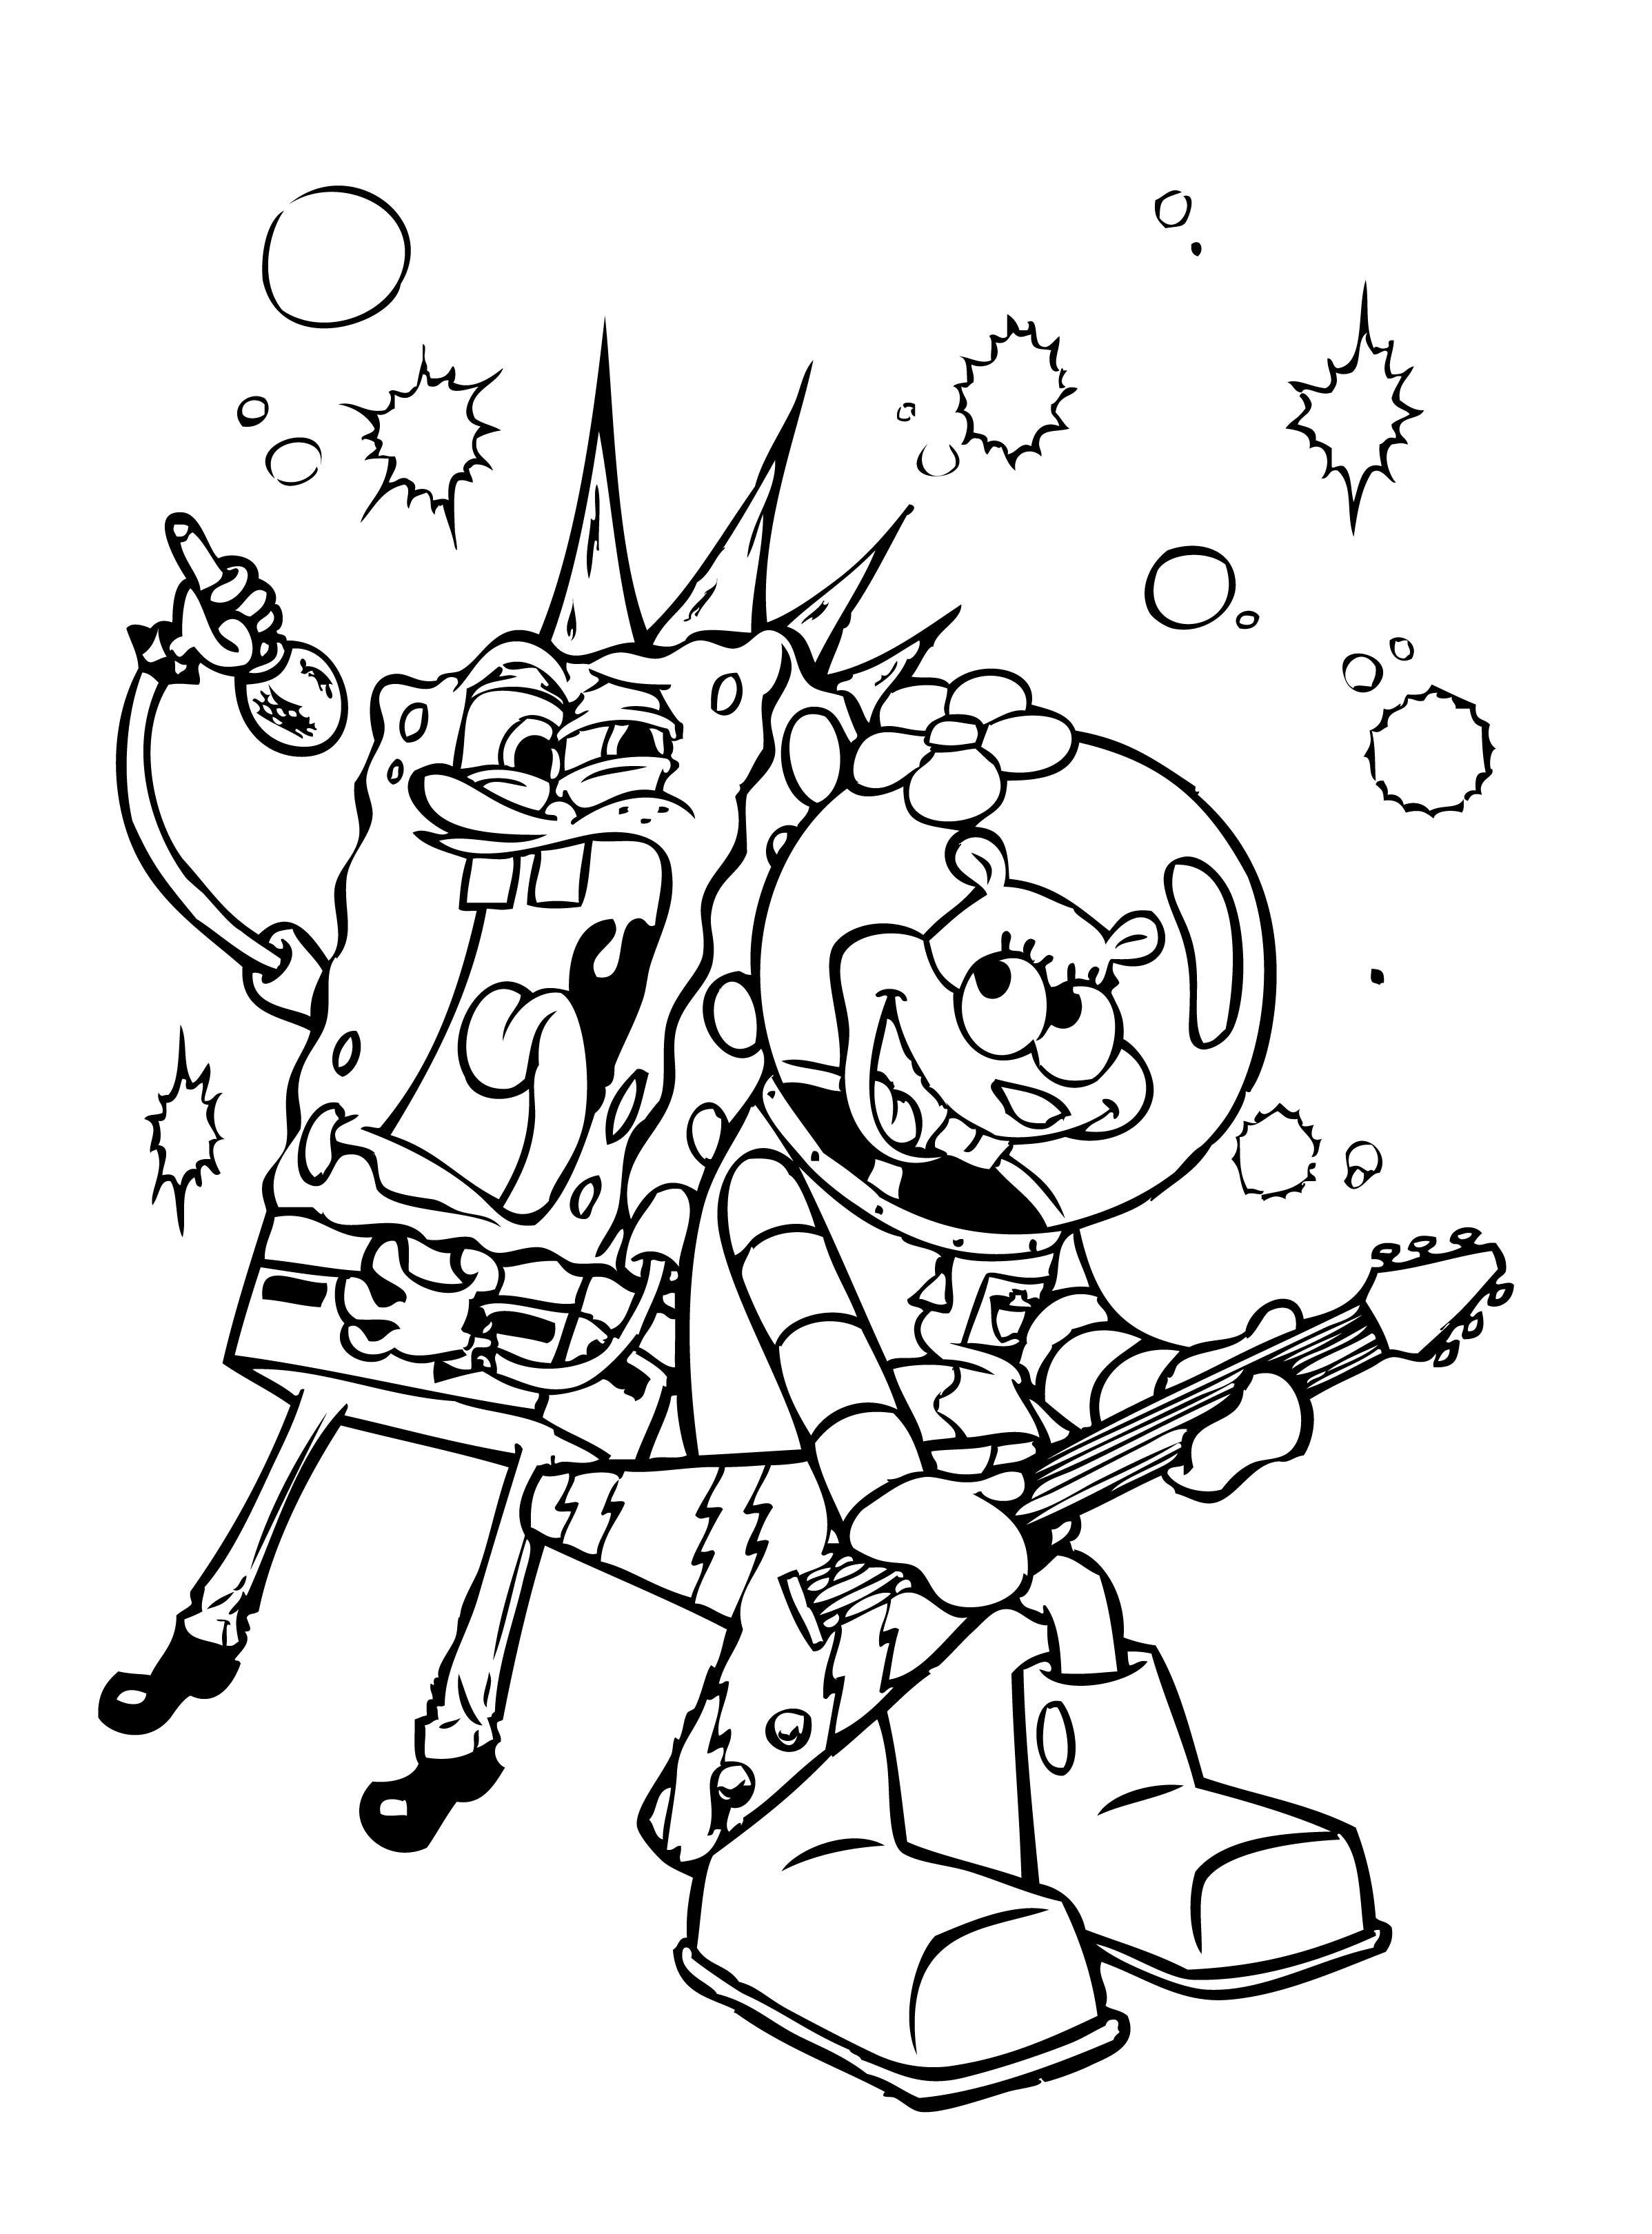 Spongebob Bilder Zum Ausmalen Frisch Spongebob Squarepants Coloring Pages Luxury Cool Coloring Page Luxus Das Bild